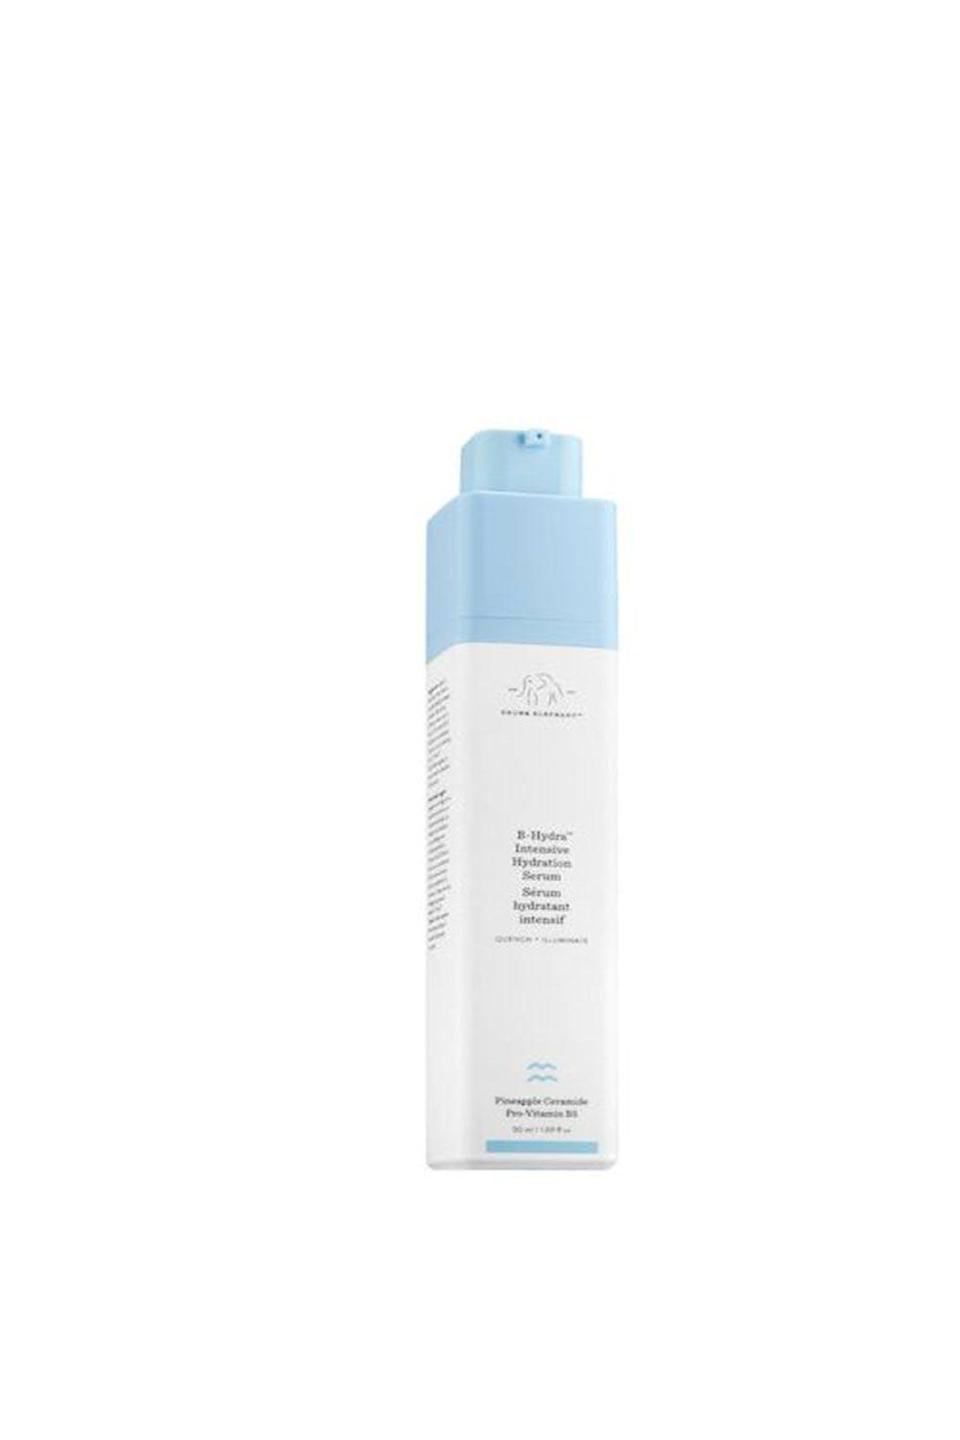 """<p><strong>Drunk Elephant</strong></p><p>sephora.com</p><p><strong>$48.00</strong></p><p><a href=""""https://go.redirectingat.com?id=74968X1596630&url=https%3A%2F%2Fwww.sephora.com%2Fproduct%2Fb-hydra-intensive-hydration-gel-P406712&sref=https%3A%2F%2Fwww.oprahdaily.com%2Fbeauty%2Fskin-makeup%2Fg27529759%2Fbest-hyaluronic-acid-serum%2F"""" rel=""""nofollow noopener"""" target=""""_blank"""" data-ylk=""""slk:SHOP NOW"""" class=""""link rapid-noclick-resp"""">SHOP NOW</a></p><p>This product contains a water-soluble, salt form of hyaluronic acid for the face, which reduces the appearance of fine lines and promotes firmness. """"It also includes vitamin B5 and pineapple ceramides to improve the skin's barrier, while improving luminosity, texture and tone of the skin,"""" says Batra.</p>"""